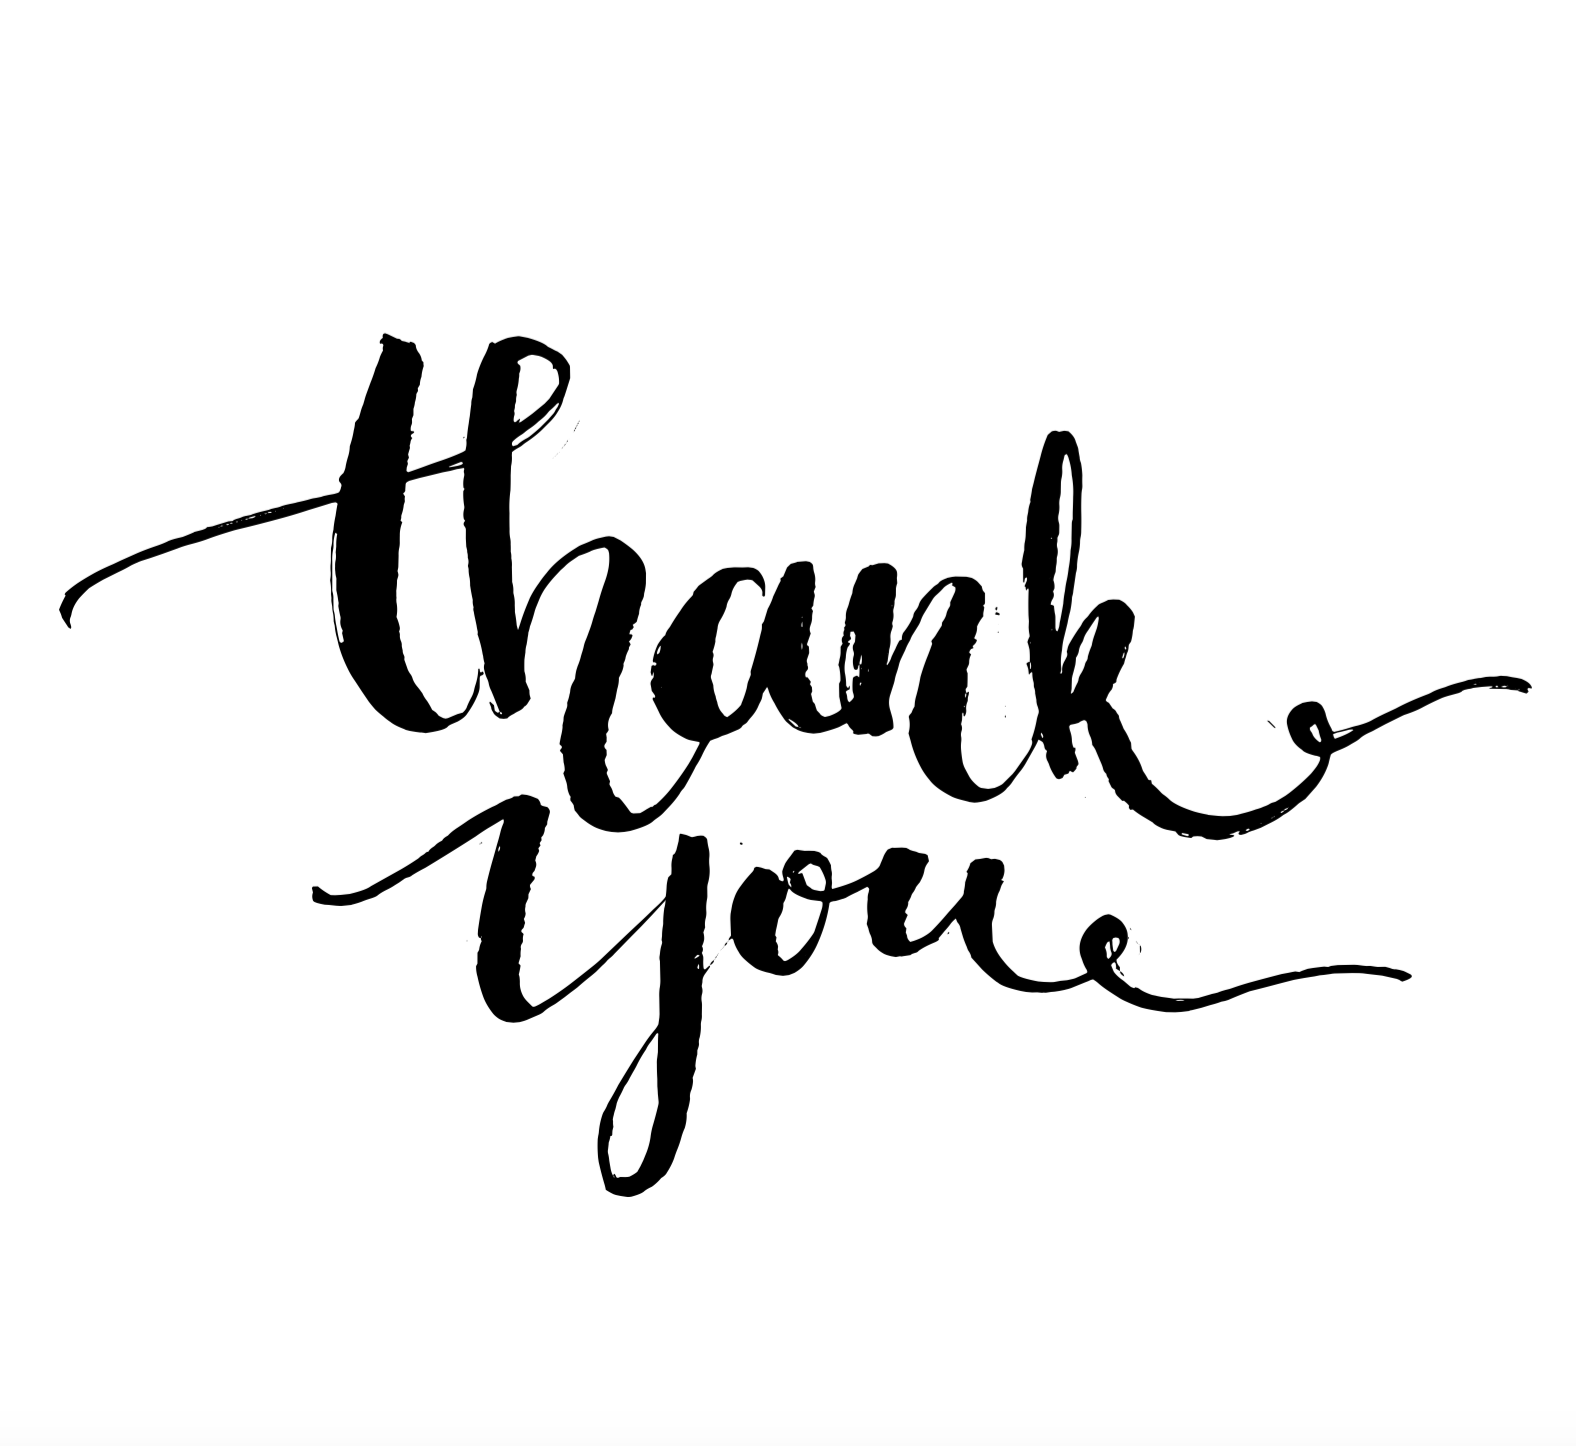 Thank you spring clipart in black and white clip art royalty free Thank You Png | Free download best Thank You Png on ... clip art royalty free